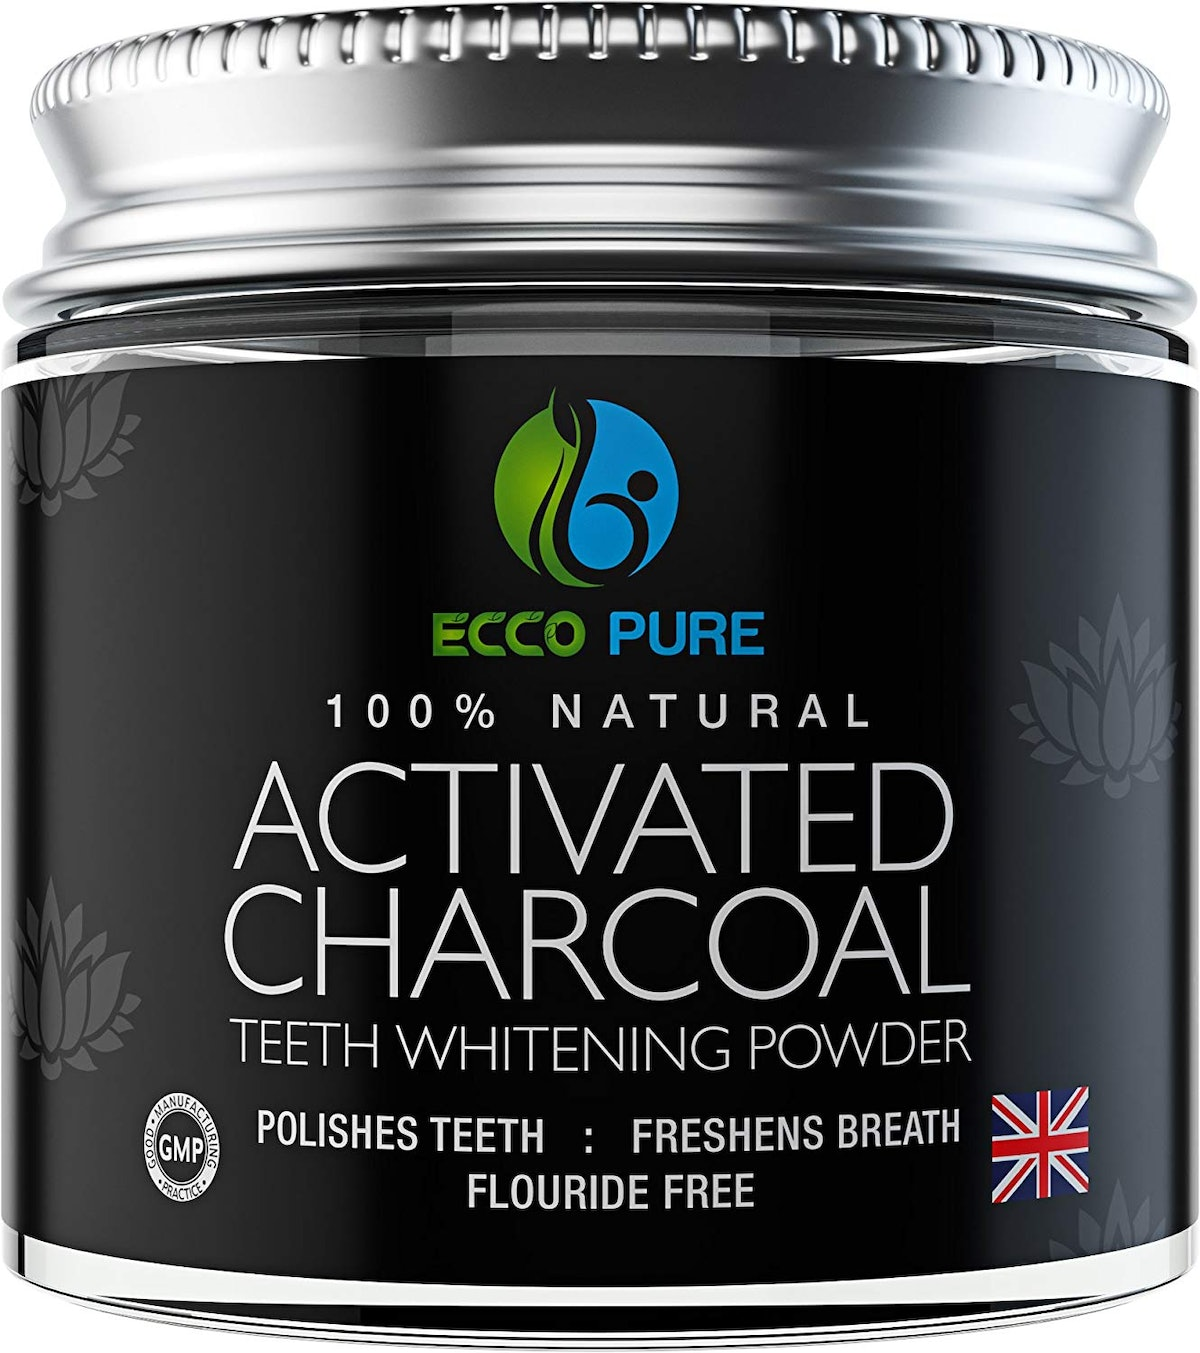 Ecco Pure Activated Charcoal Powder